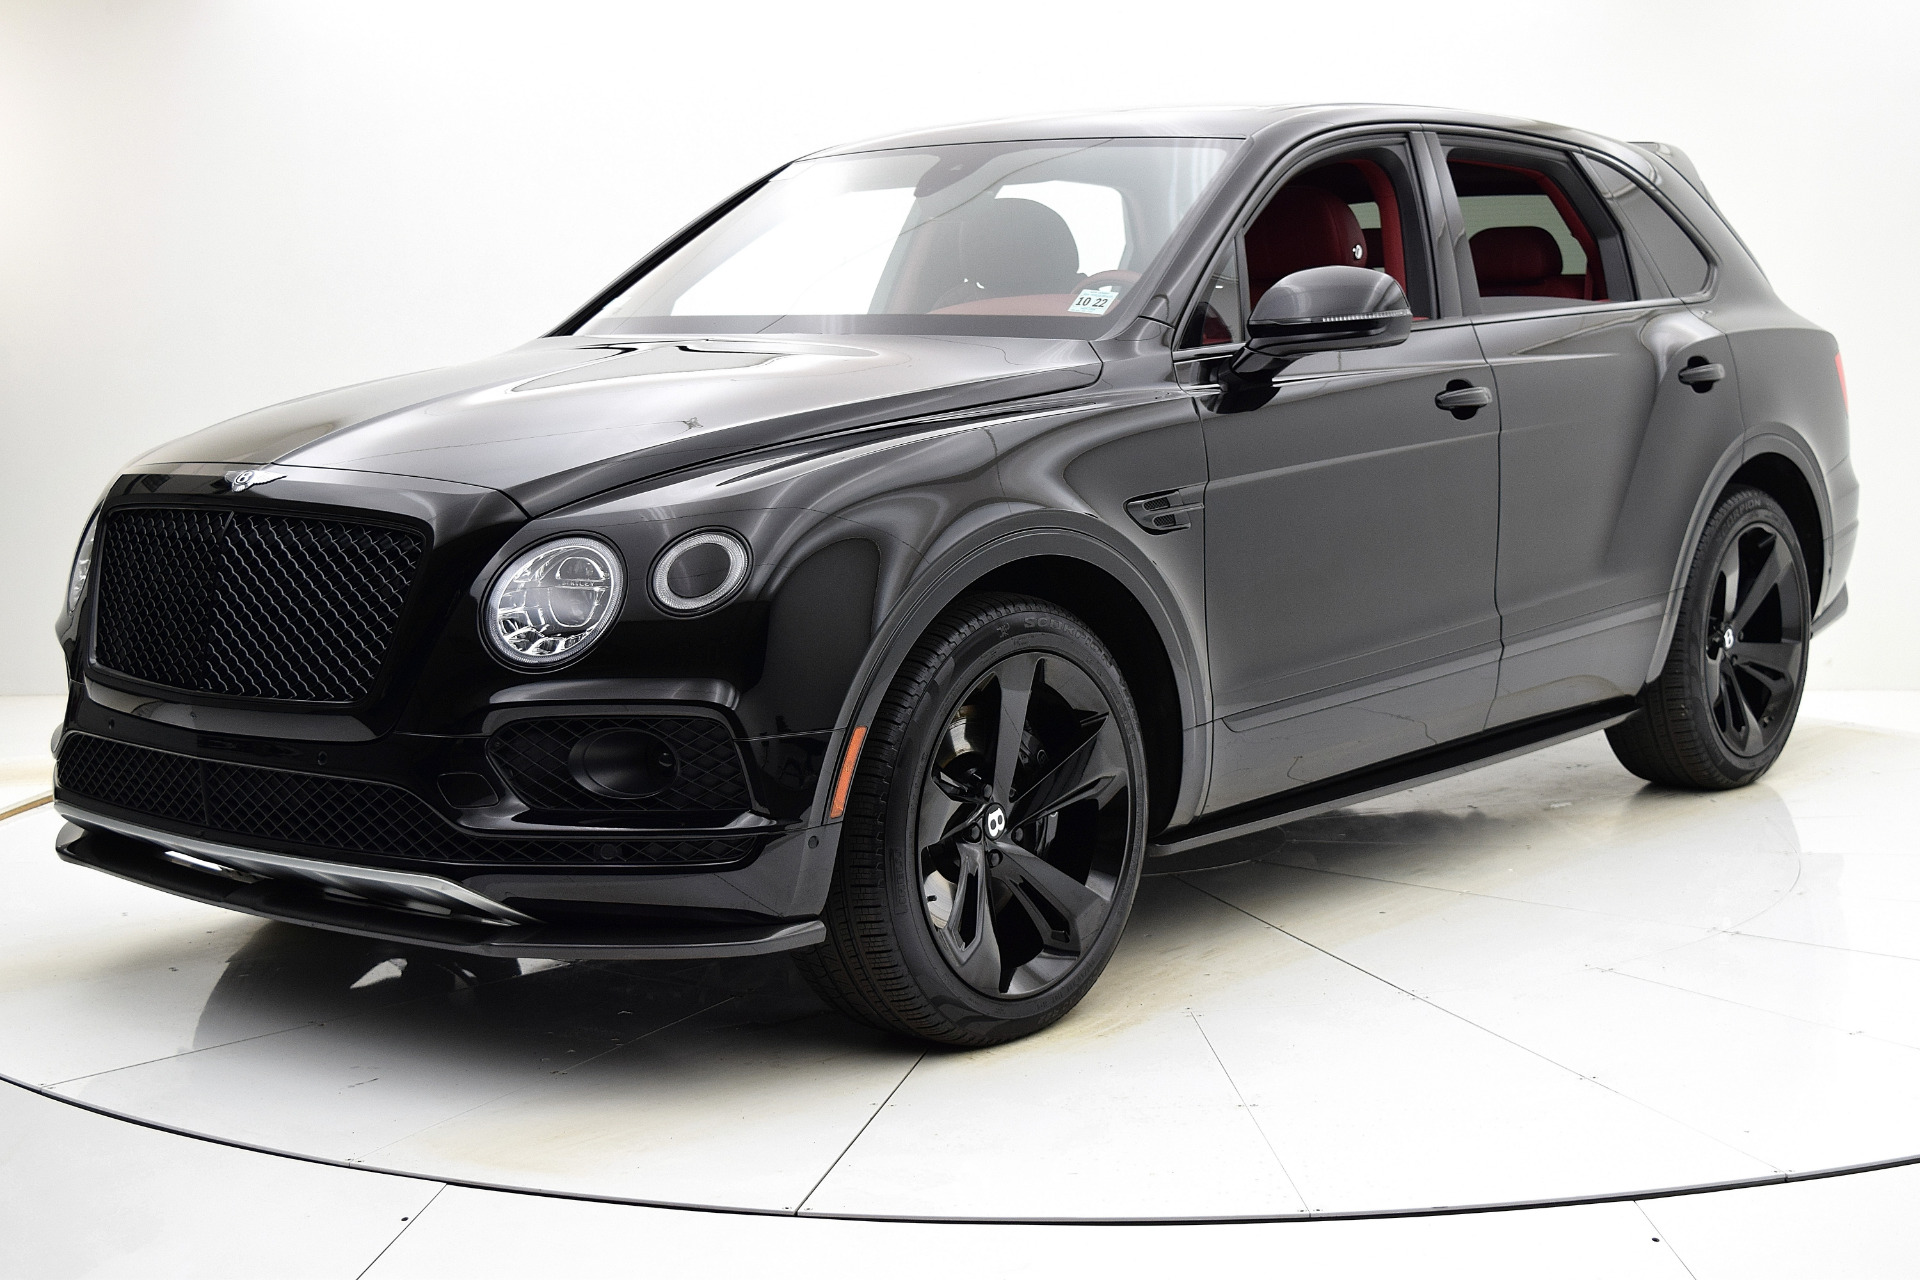 Used 2018 Bentley Bentayga Black Edition for sale $164,880 at Bentley Palmyra N.J. in Palmyra NJ 08065 2